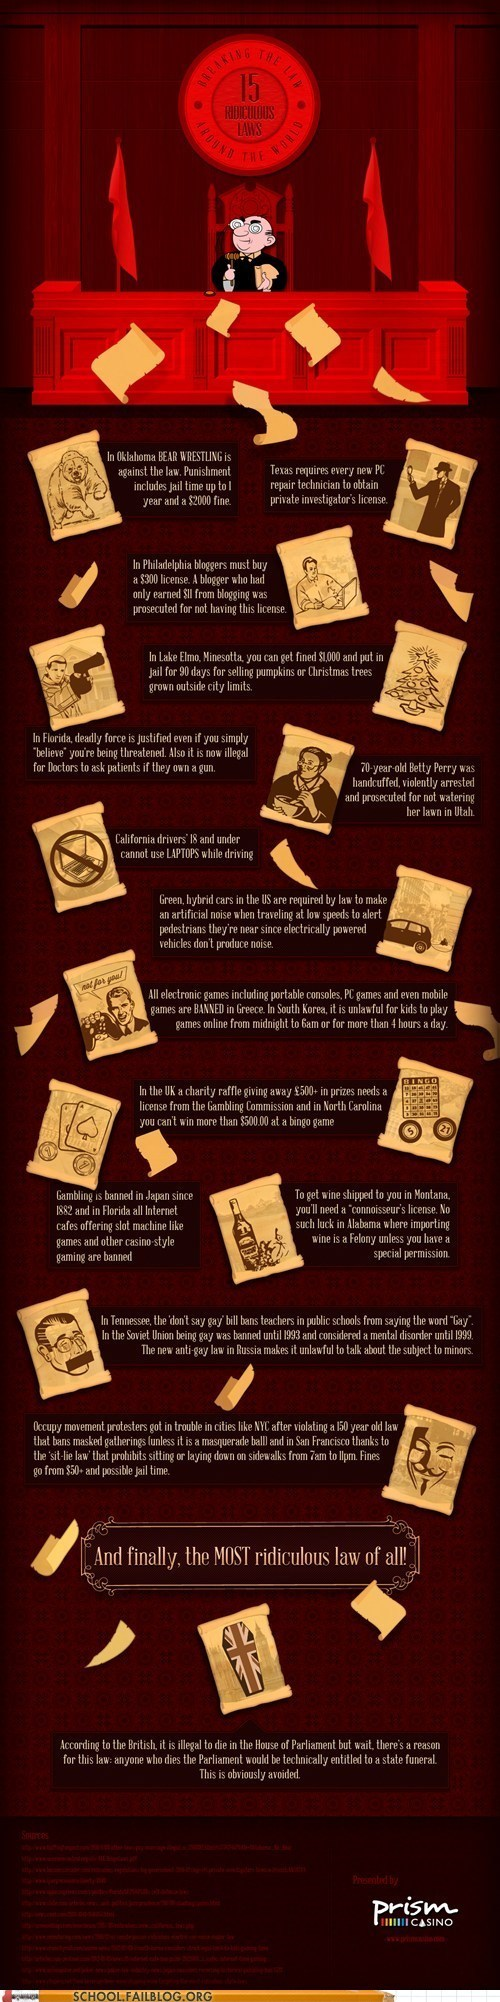 class is in session infographic obscure justice 101 - 6226372096